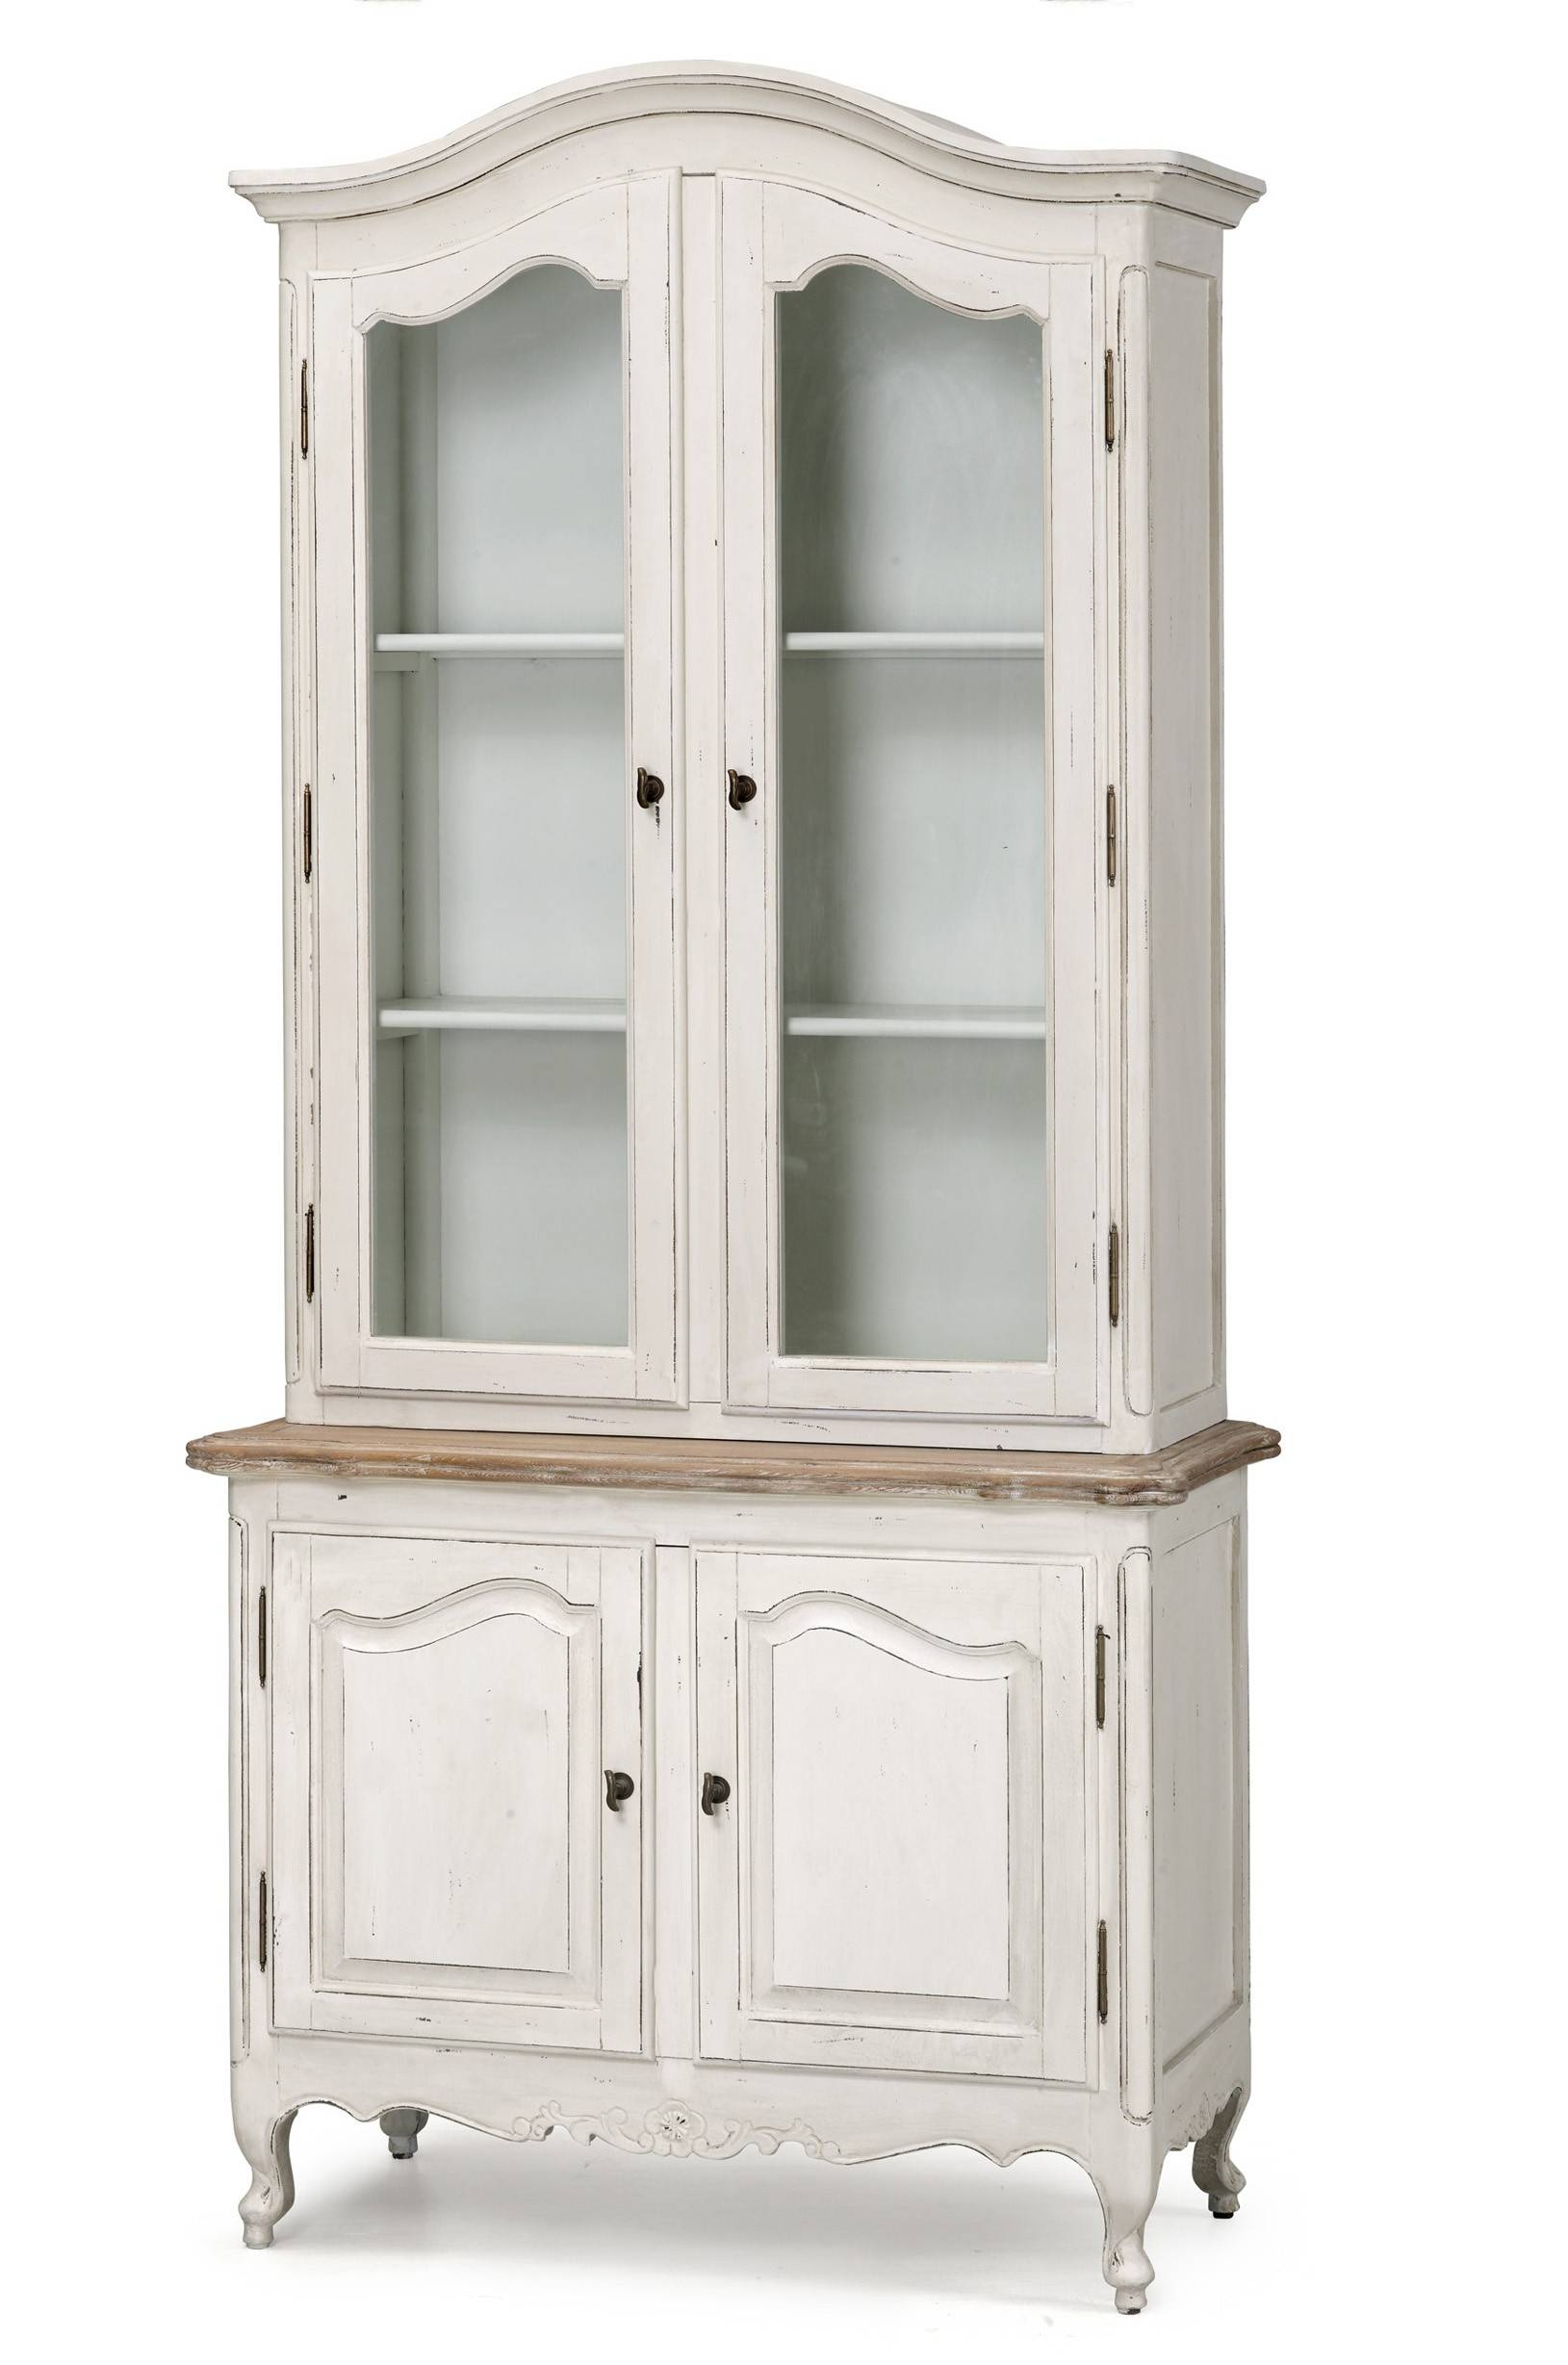 French Provincial Vintage Furniture Classic Display Cupboard intended for White Vintage Wardrobes (Image 10 of 15)